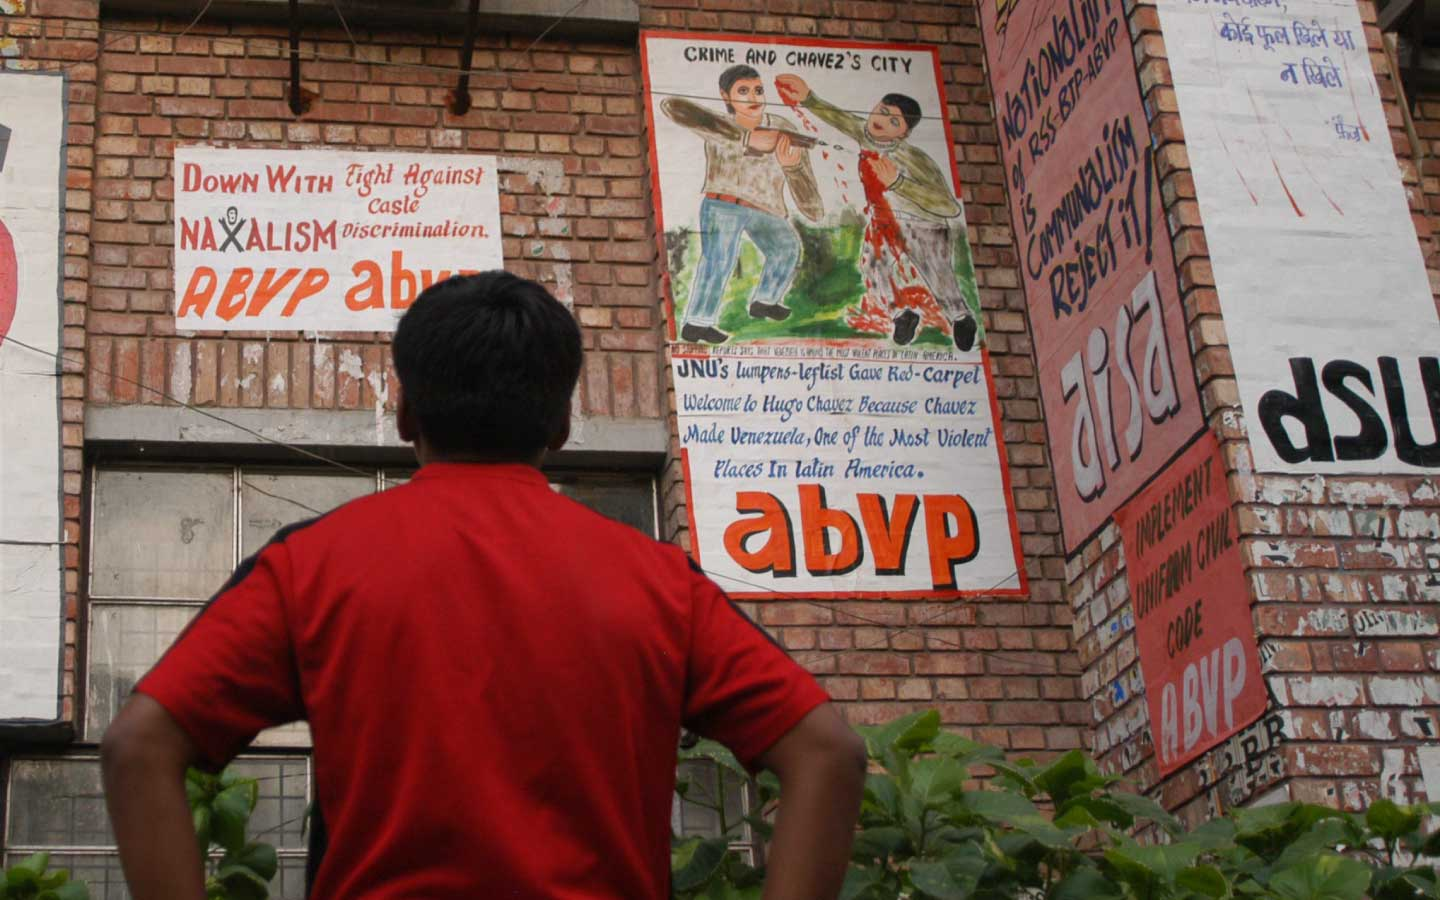 JNU Elections: 9th February Decided 9th Septembers' Fate